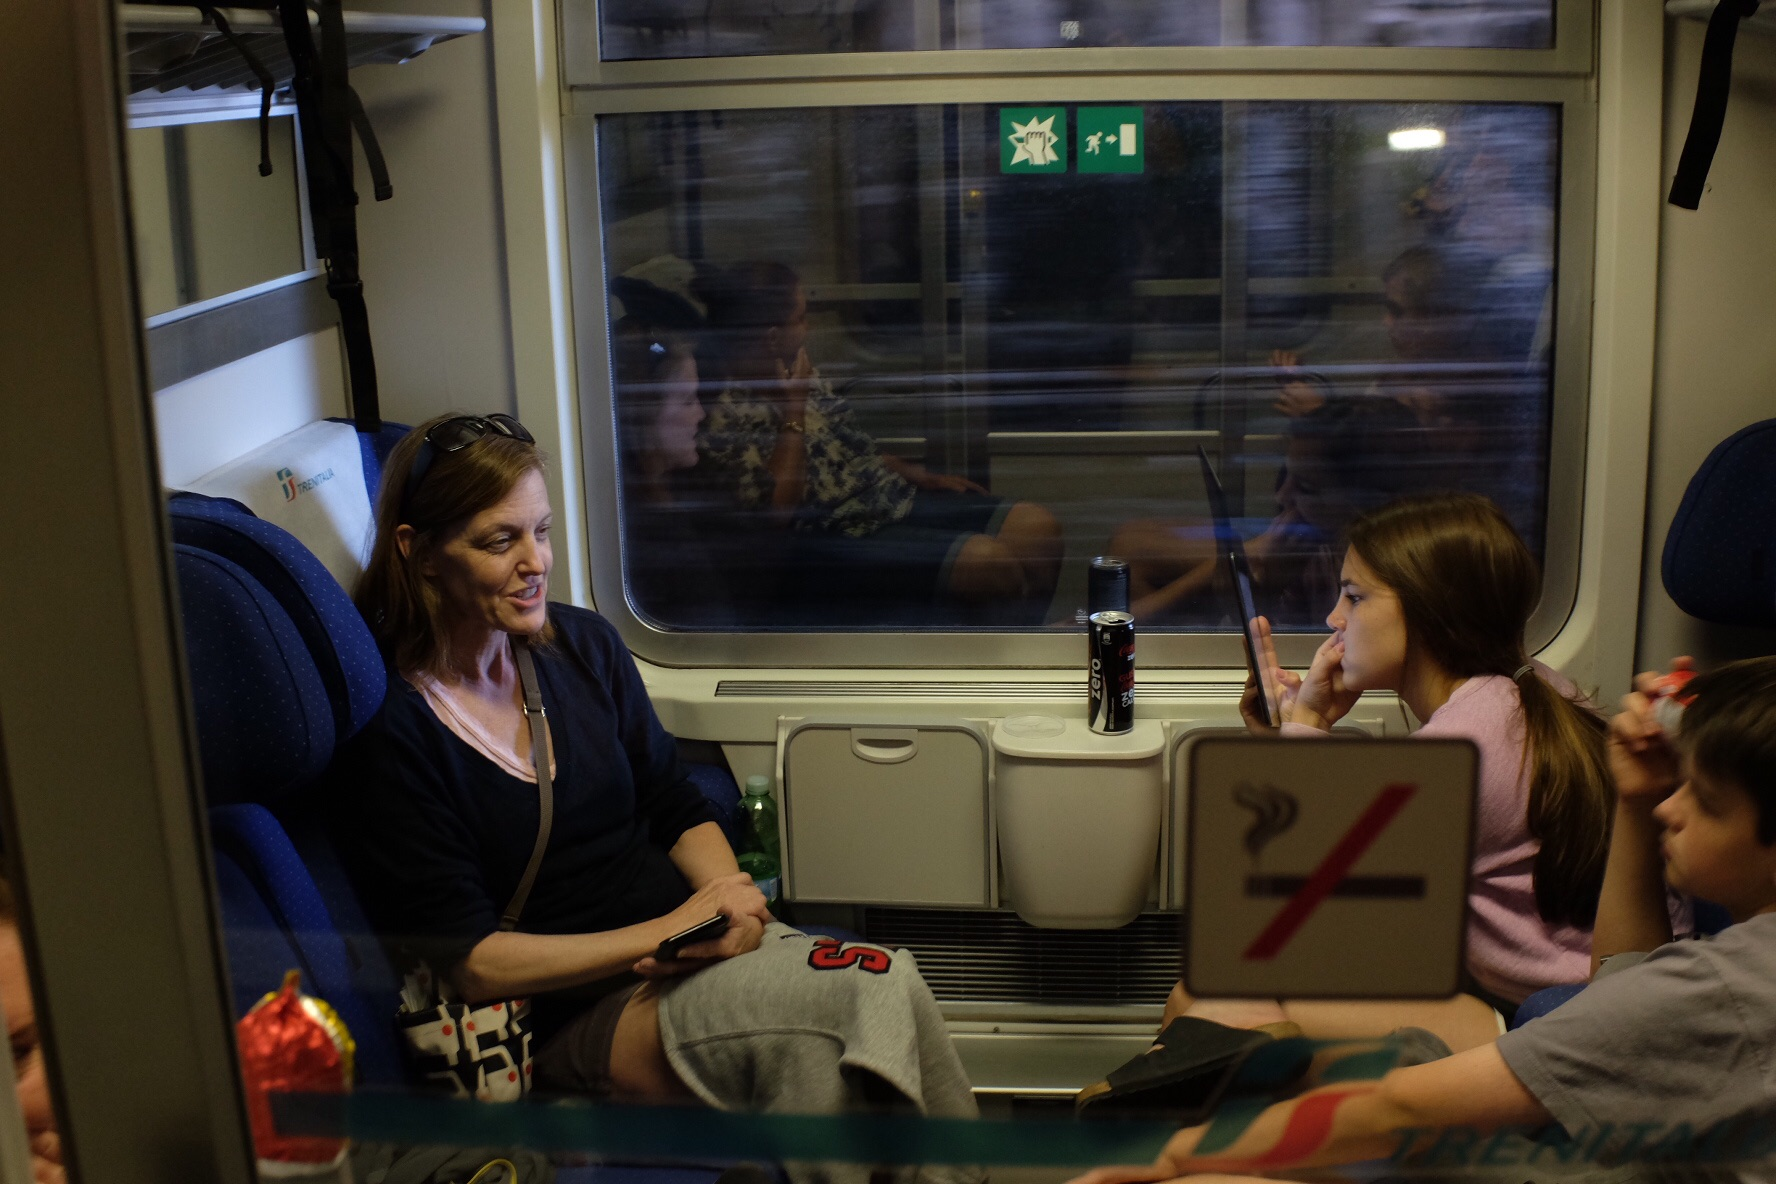 On the rails to Monterosso